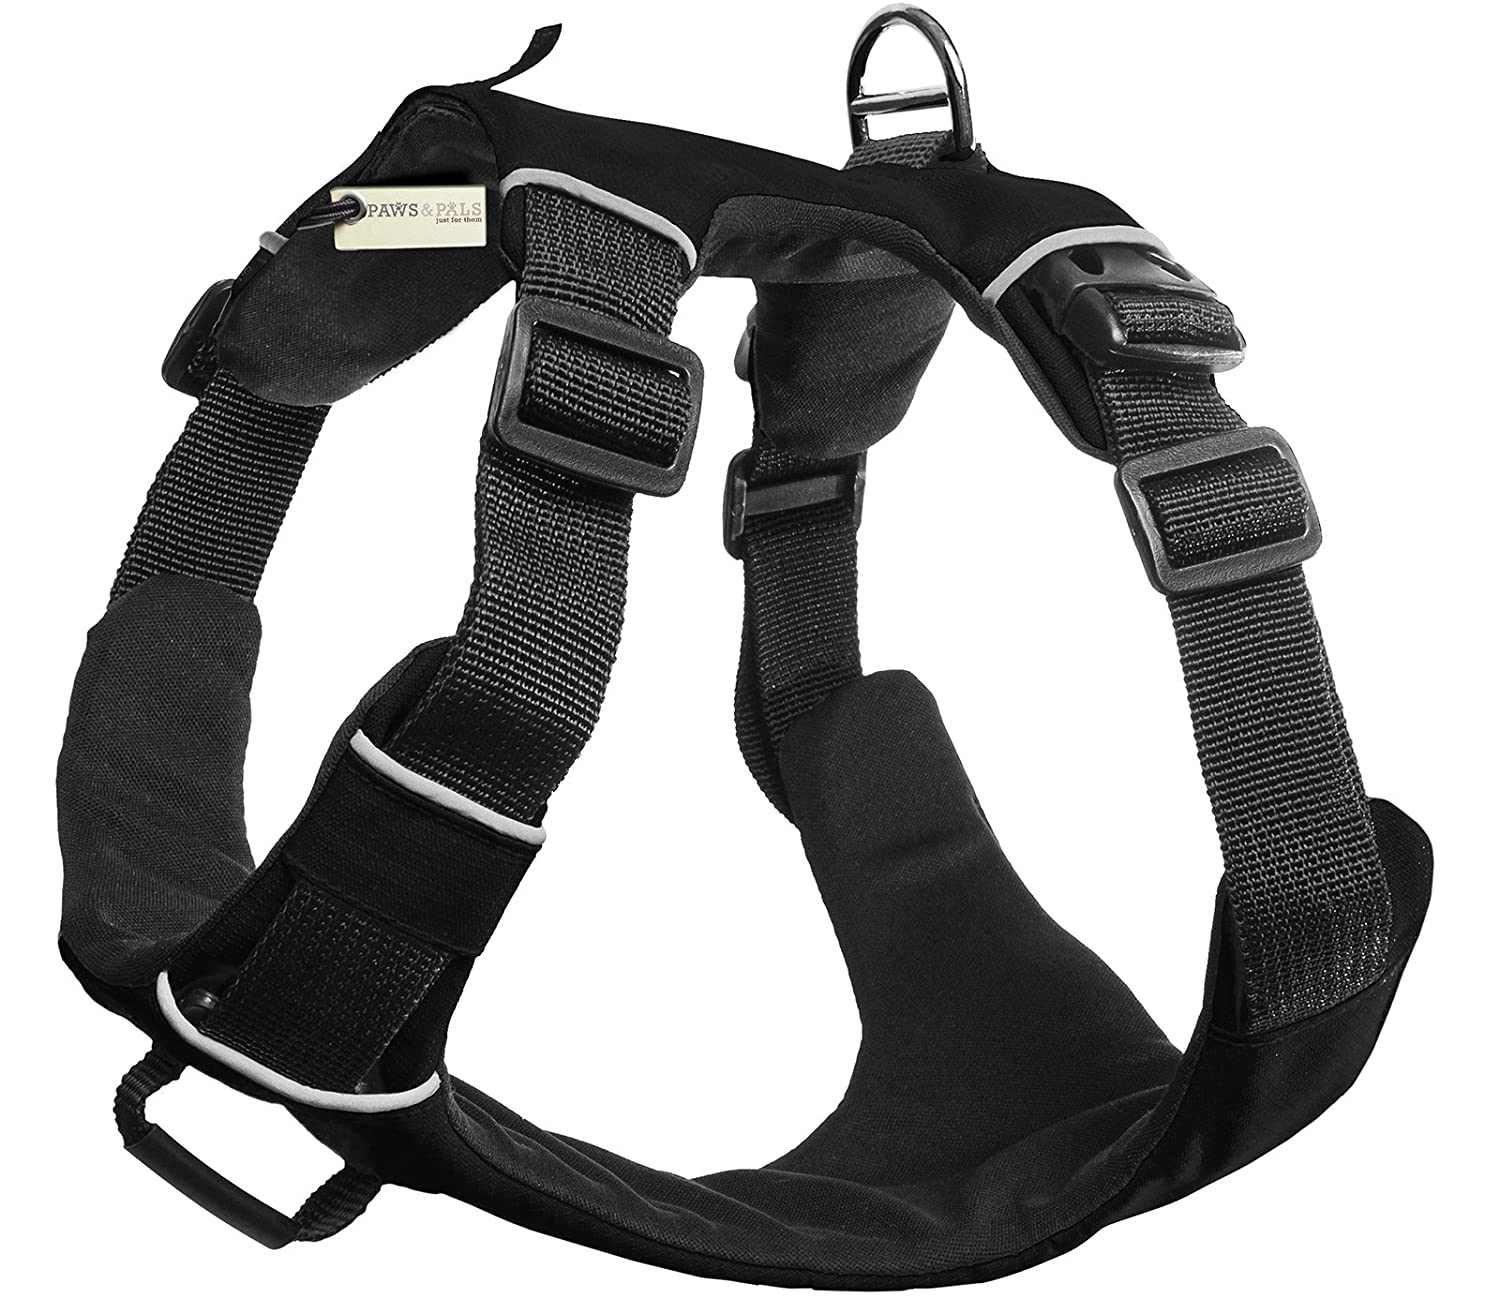 Paws & Pals Pet Harness for Dogs Cats No-Pull Durable Padded Nylon Mesh Vest Easy Secure Control (Medium, Black)